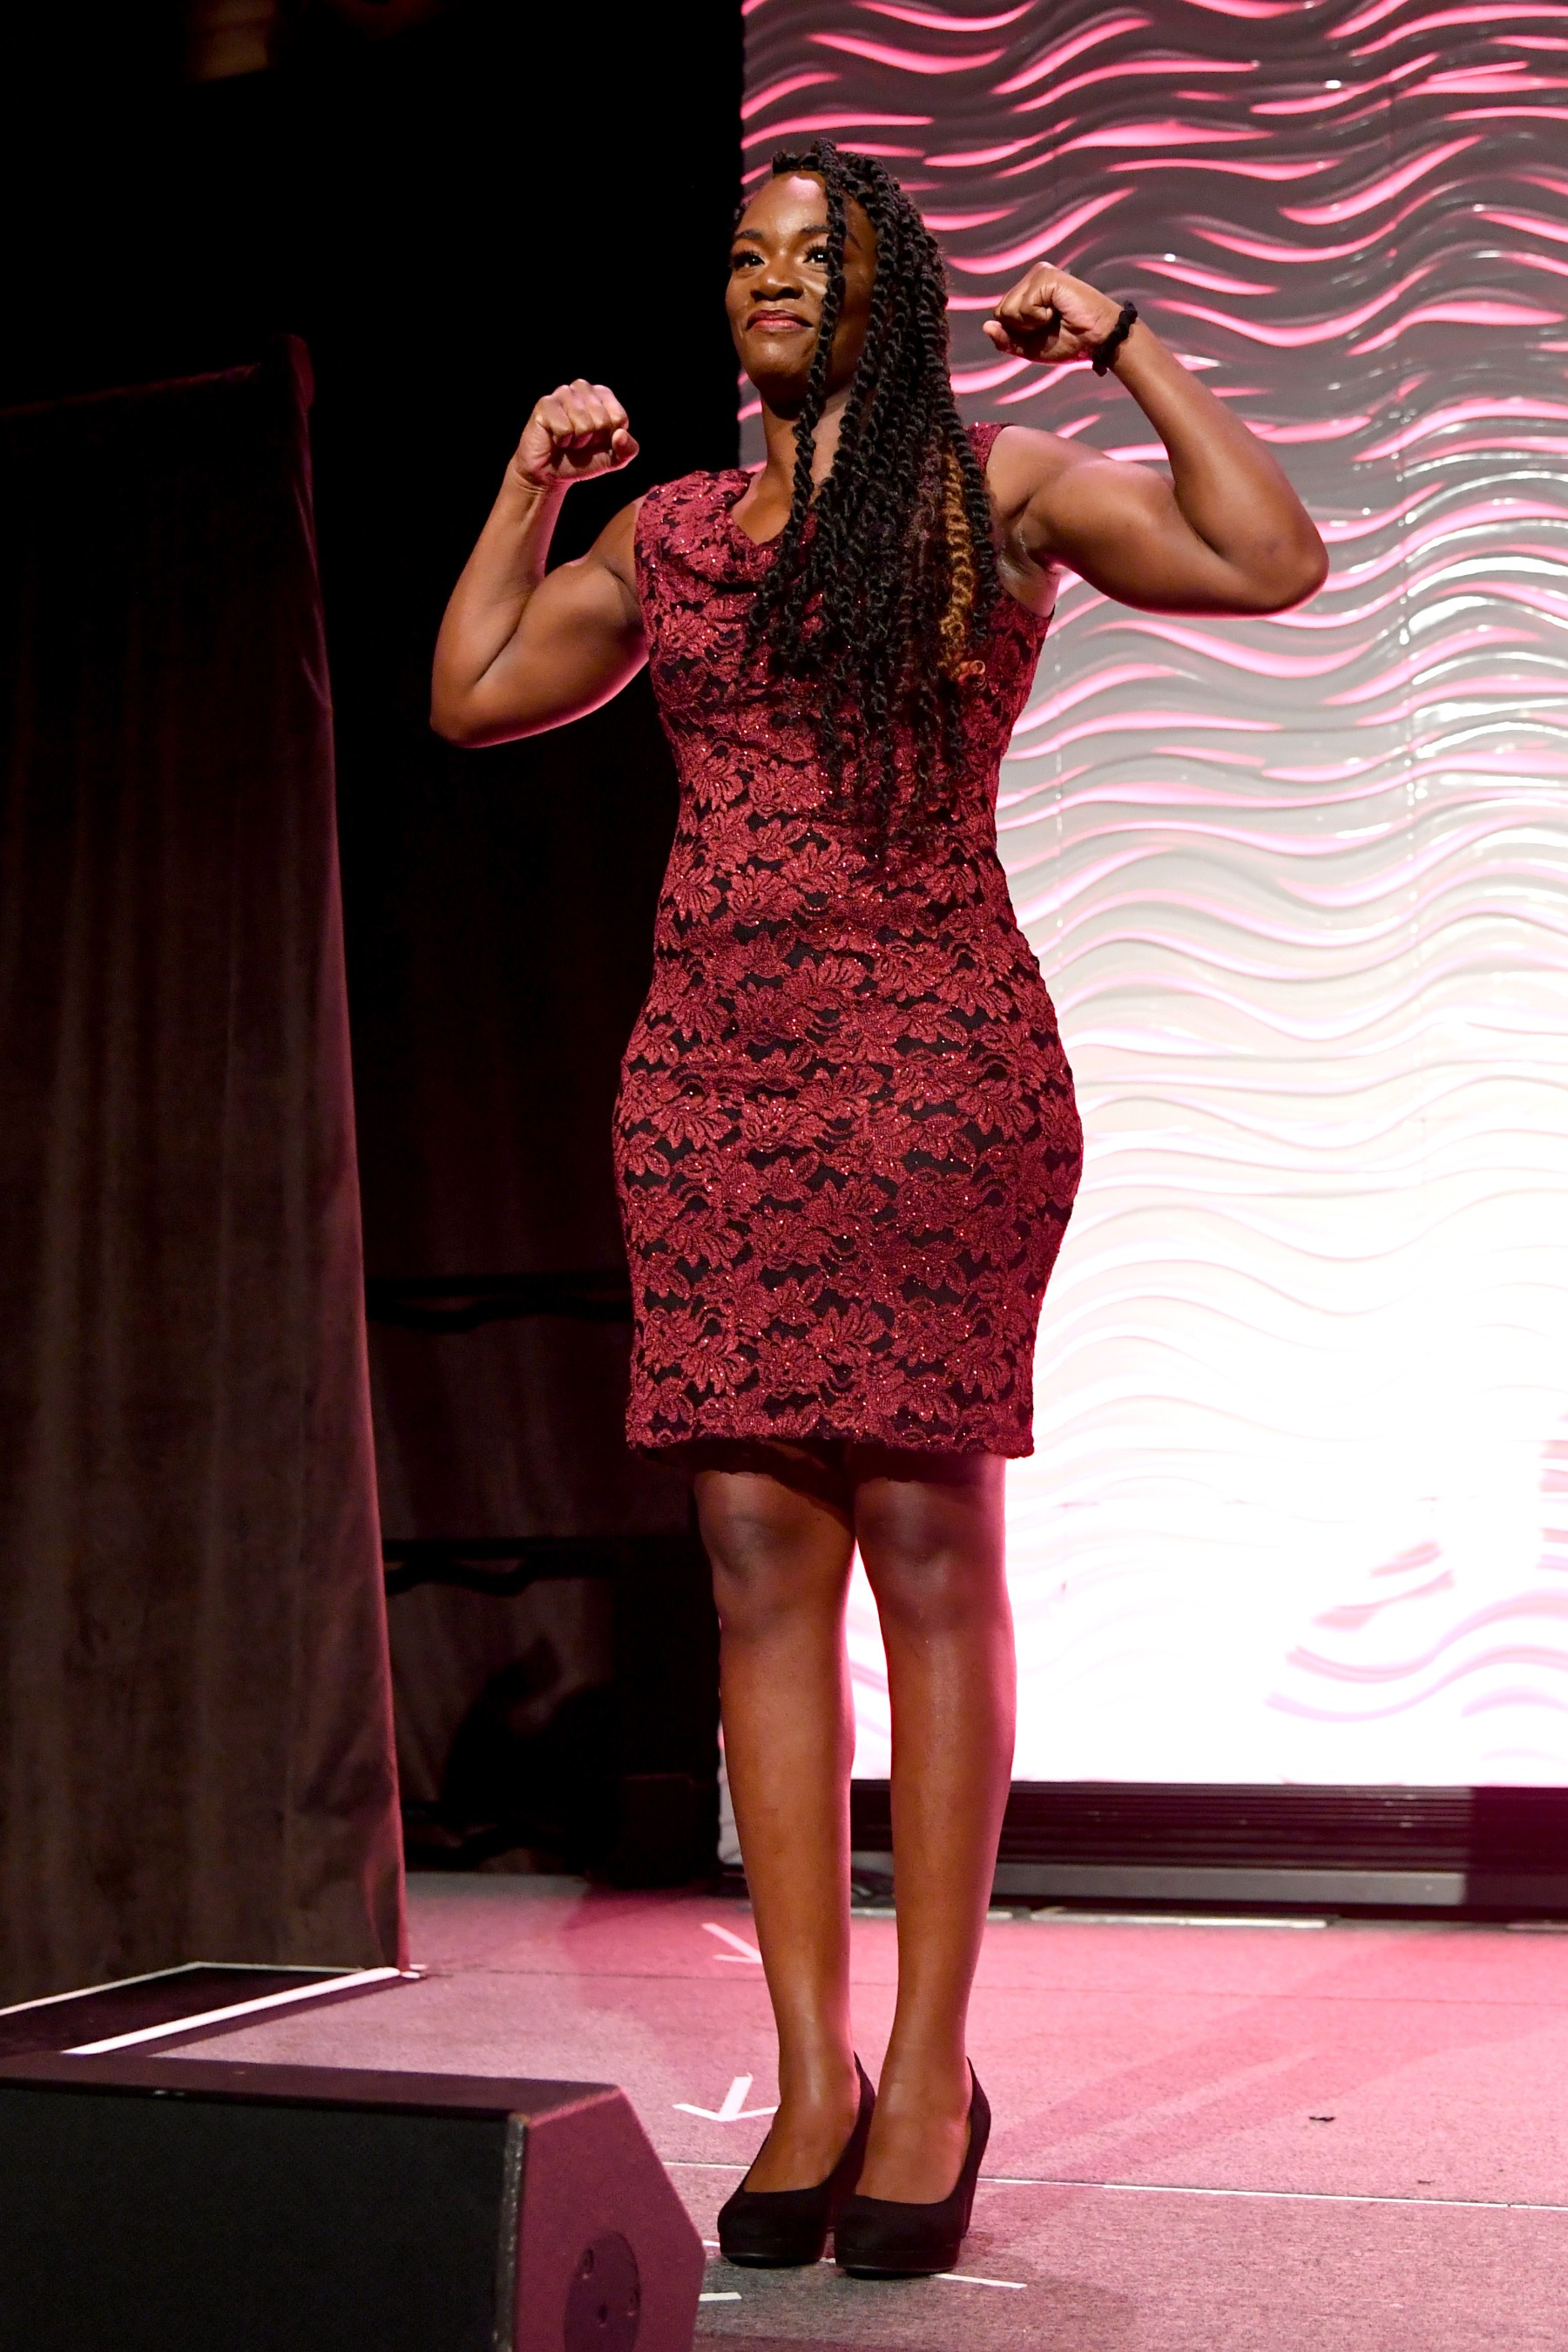 Claressa Shields was named the 2019 Individual Sportswoman of the Year by the Women's Sports Foundation at the 40th Annual Salute to Women in Sports. (Getty Images for the Women's Sports Foundation)